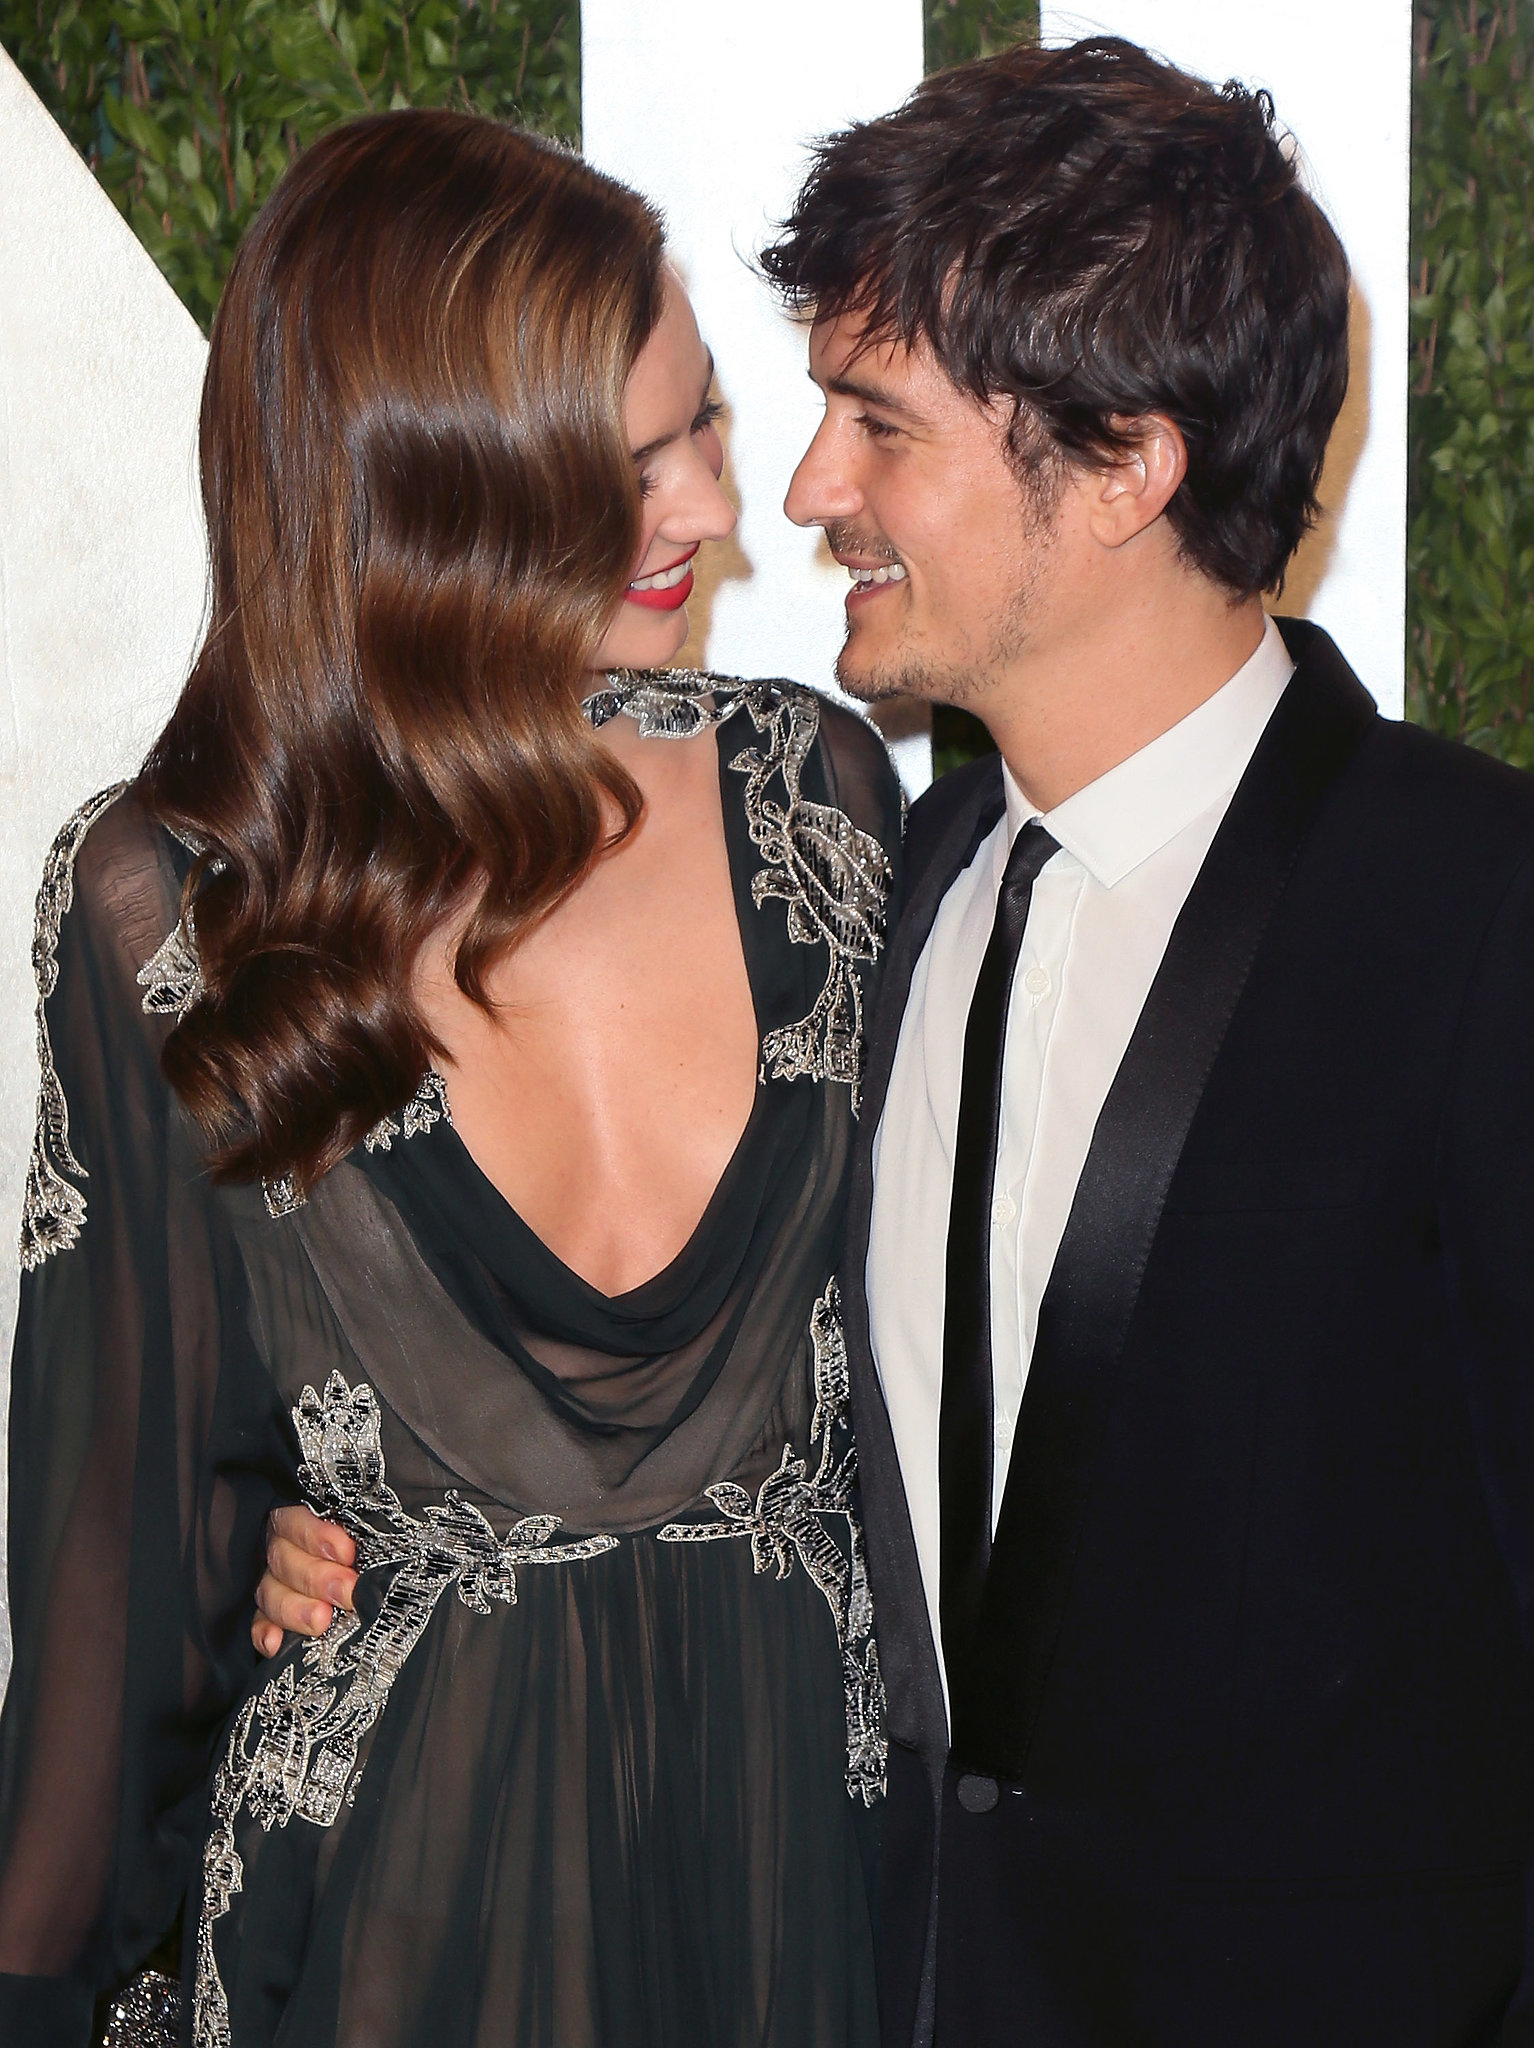 Orlando Bloom, Miranda Kerr kiss, step out together after